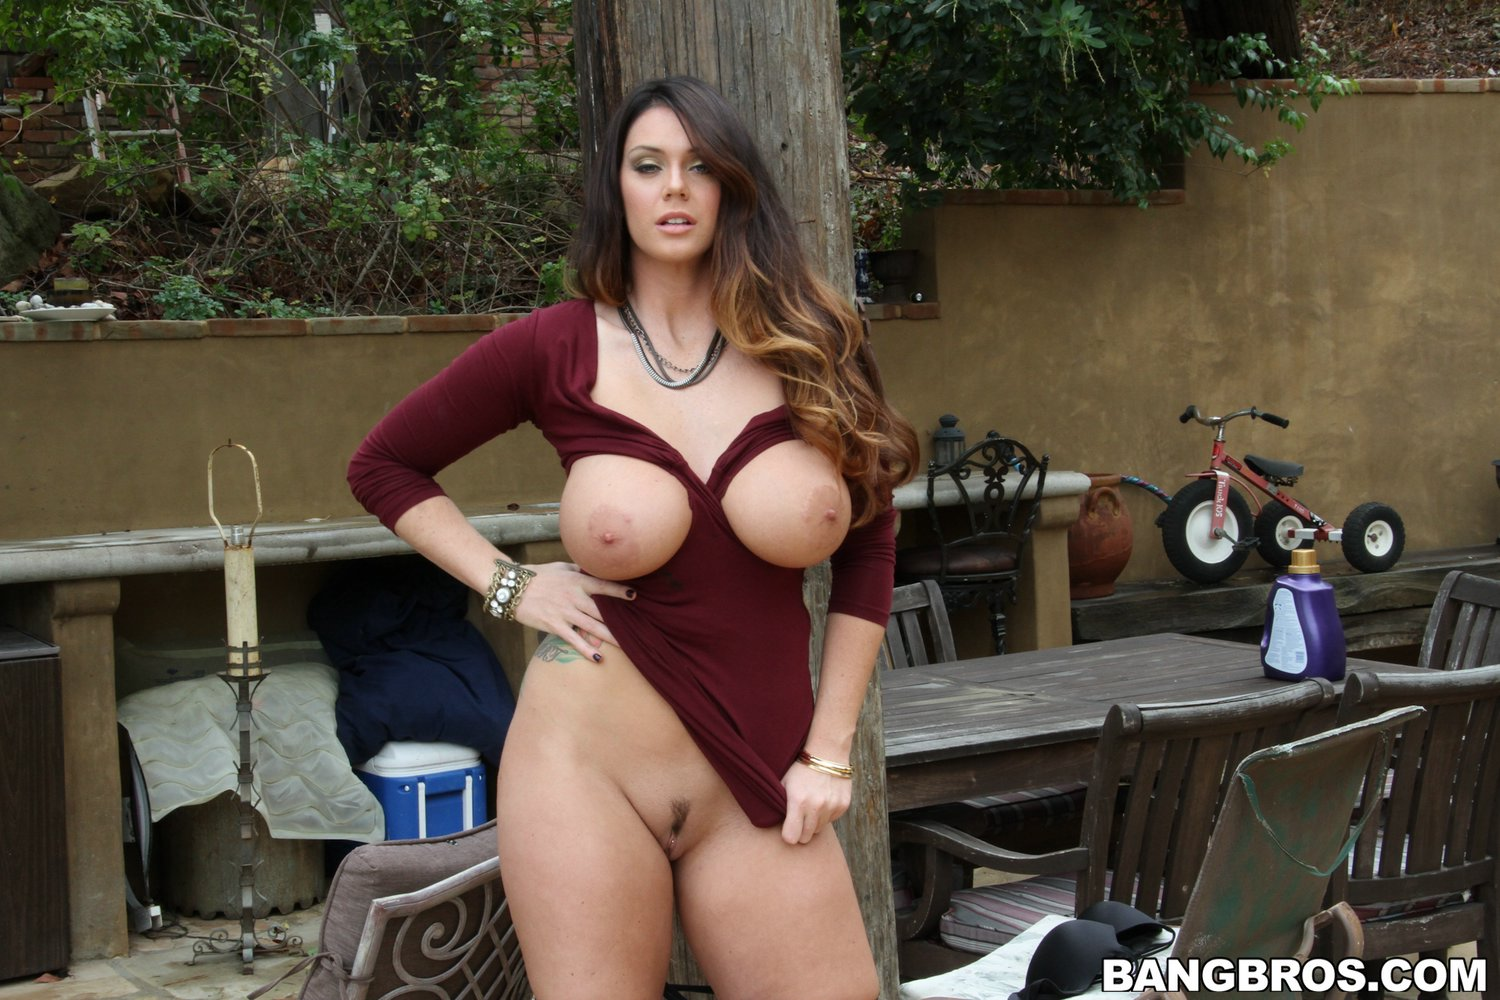 Alison Tyler Porn Pics alison tyler tight dress tits gallery – mybigtitsbabes